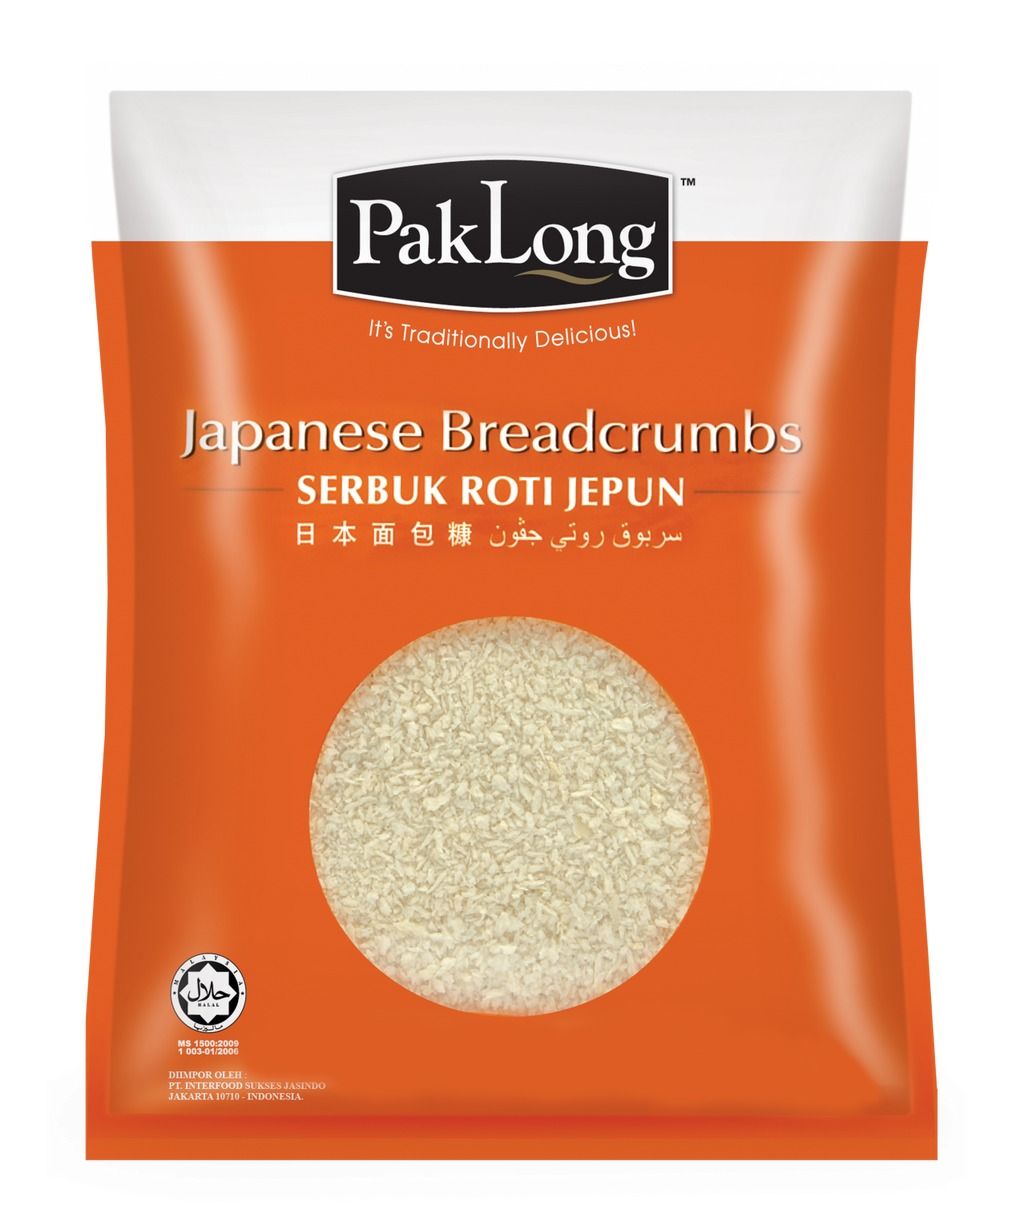 Japanese-Breadcrumbs-1278x1536.png